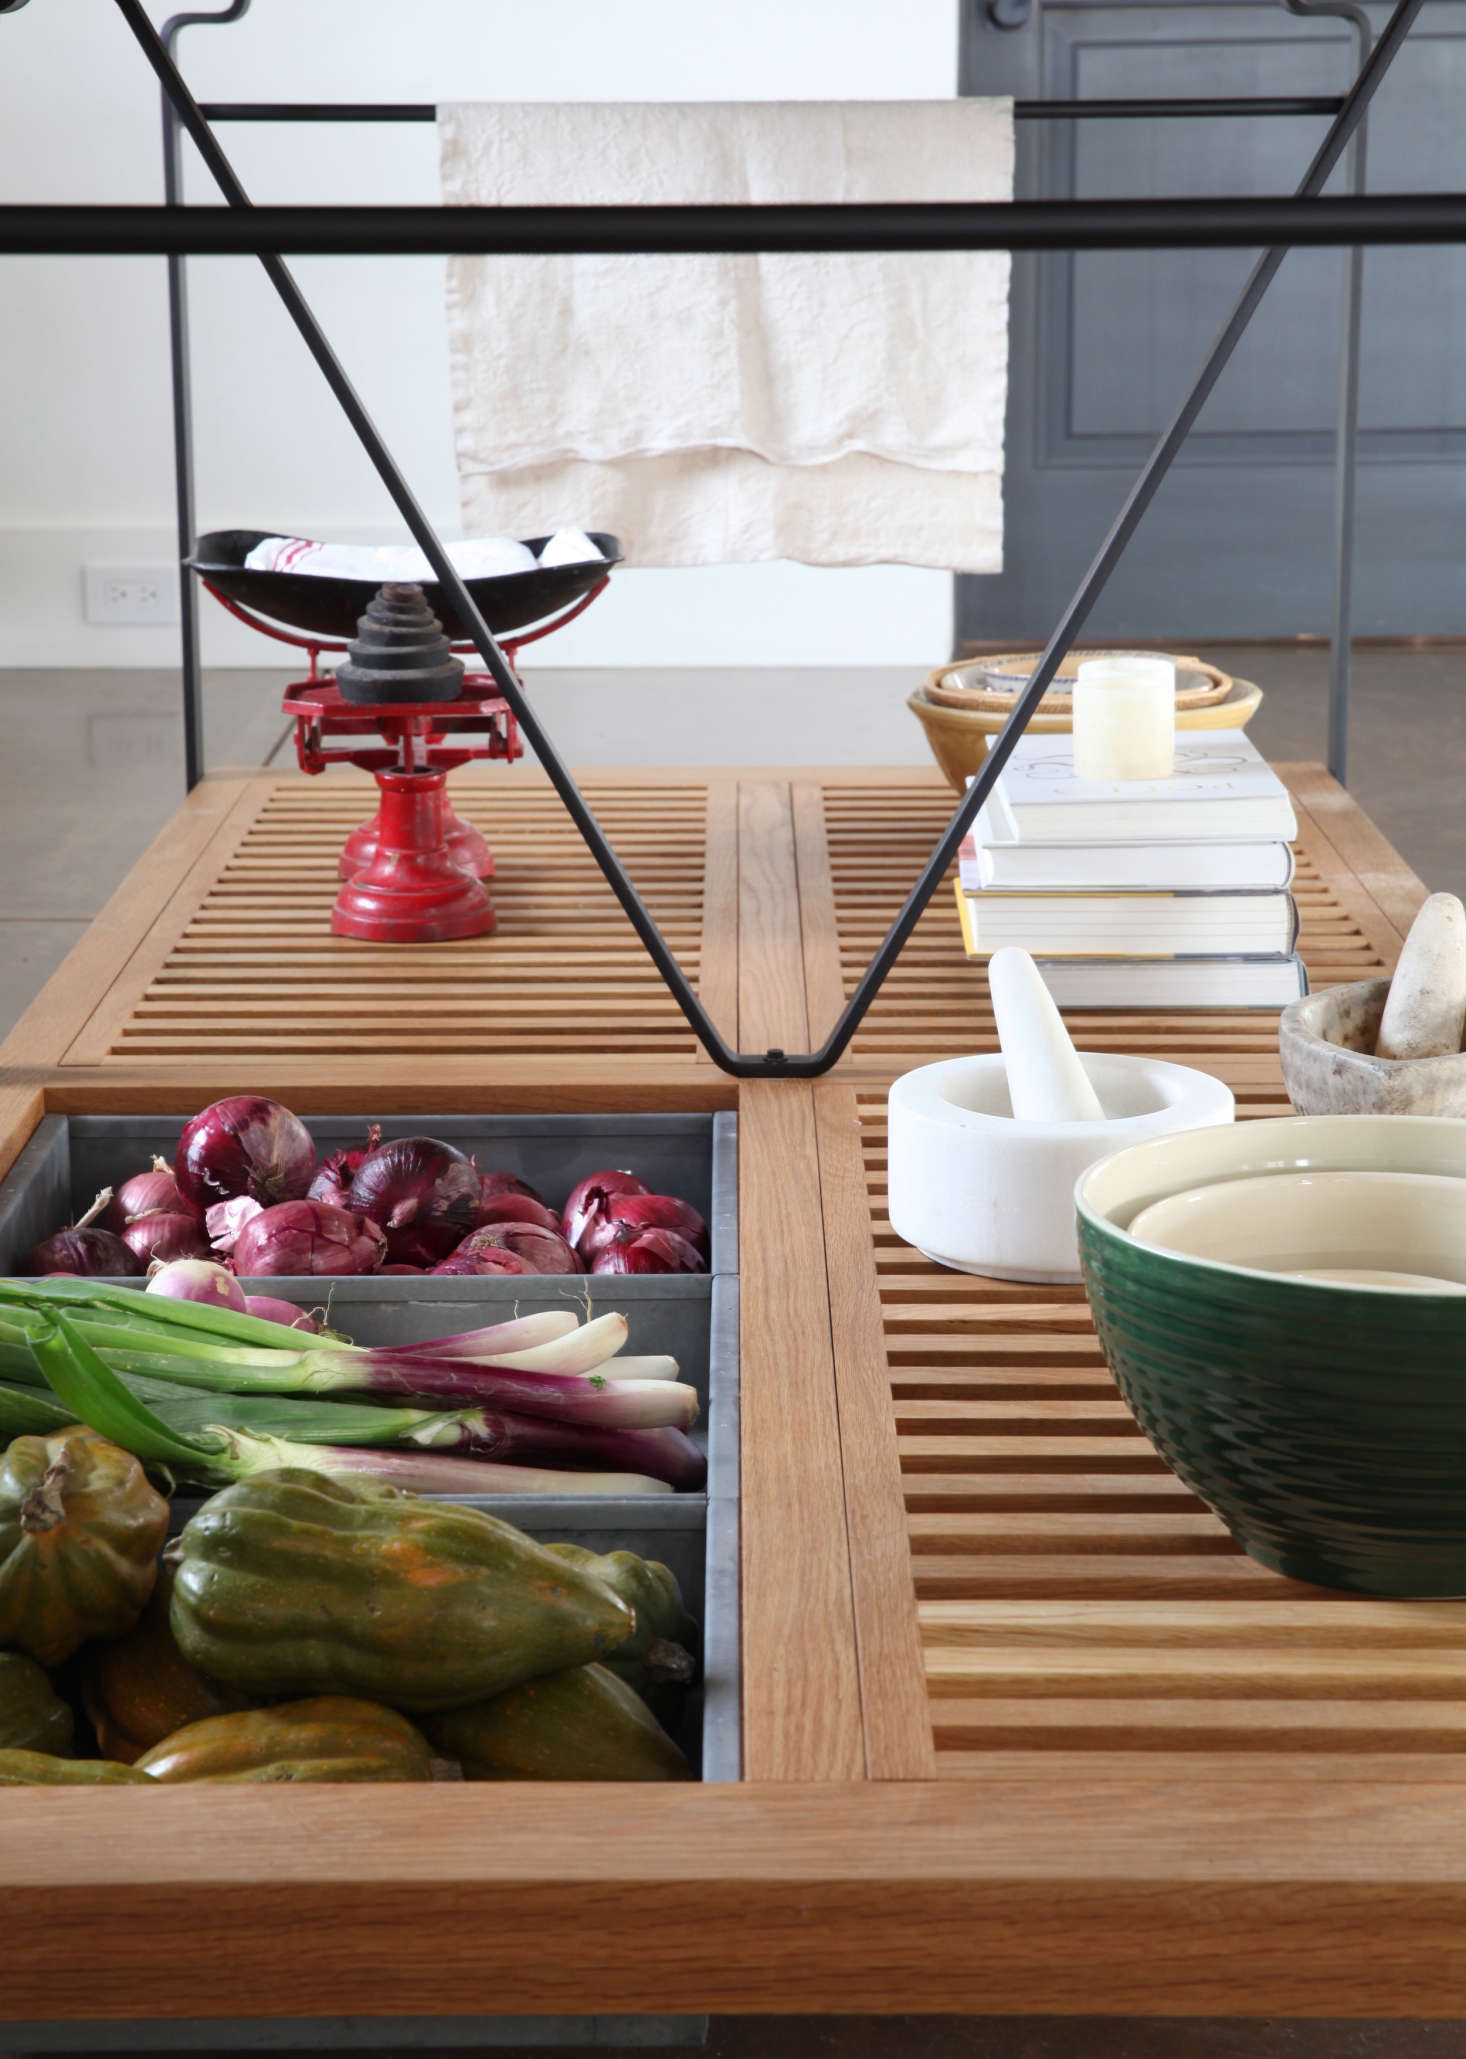 The star of the kitchen is theMarch Worktable by woodworker Matt Bear of Union Studio in Berkeley. It&#8